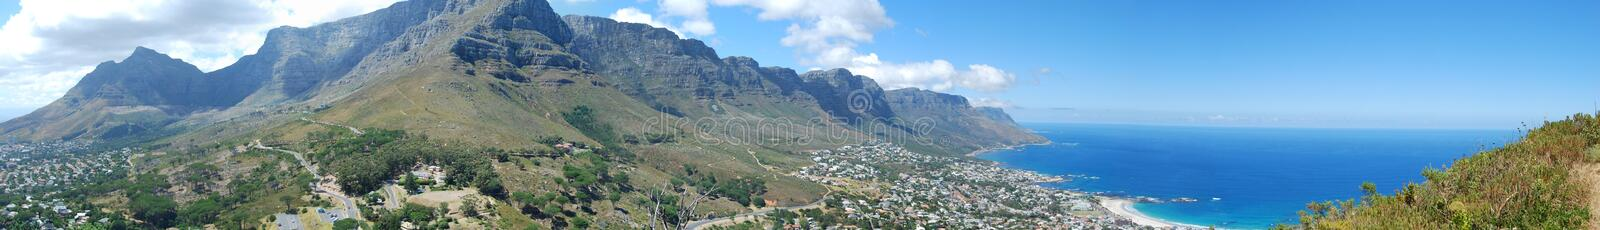 12 Apostles with Table Mountain and Camps Bay royalty free stock photos